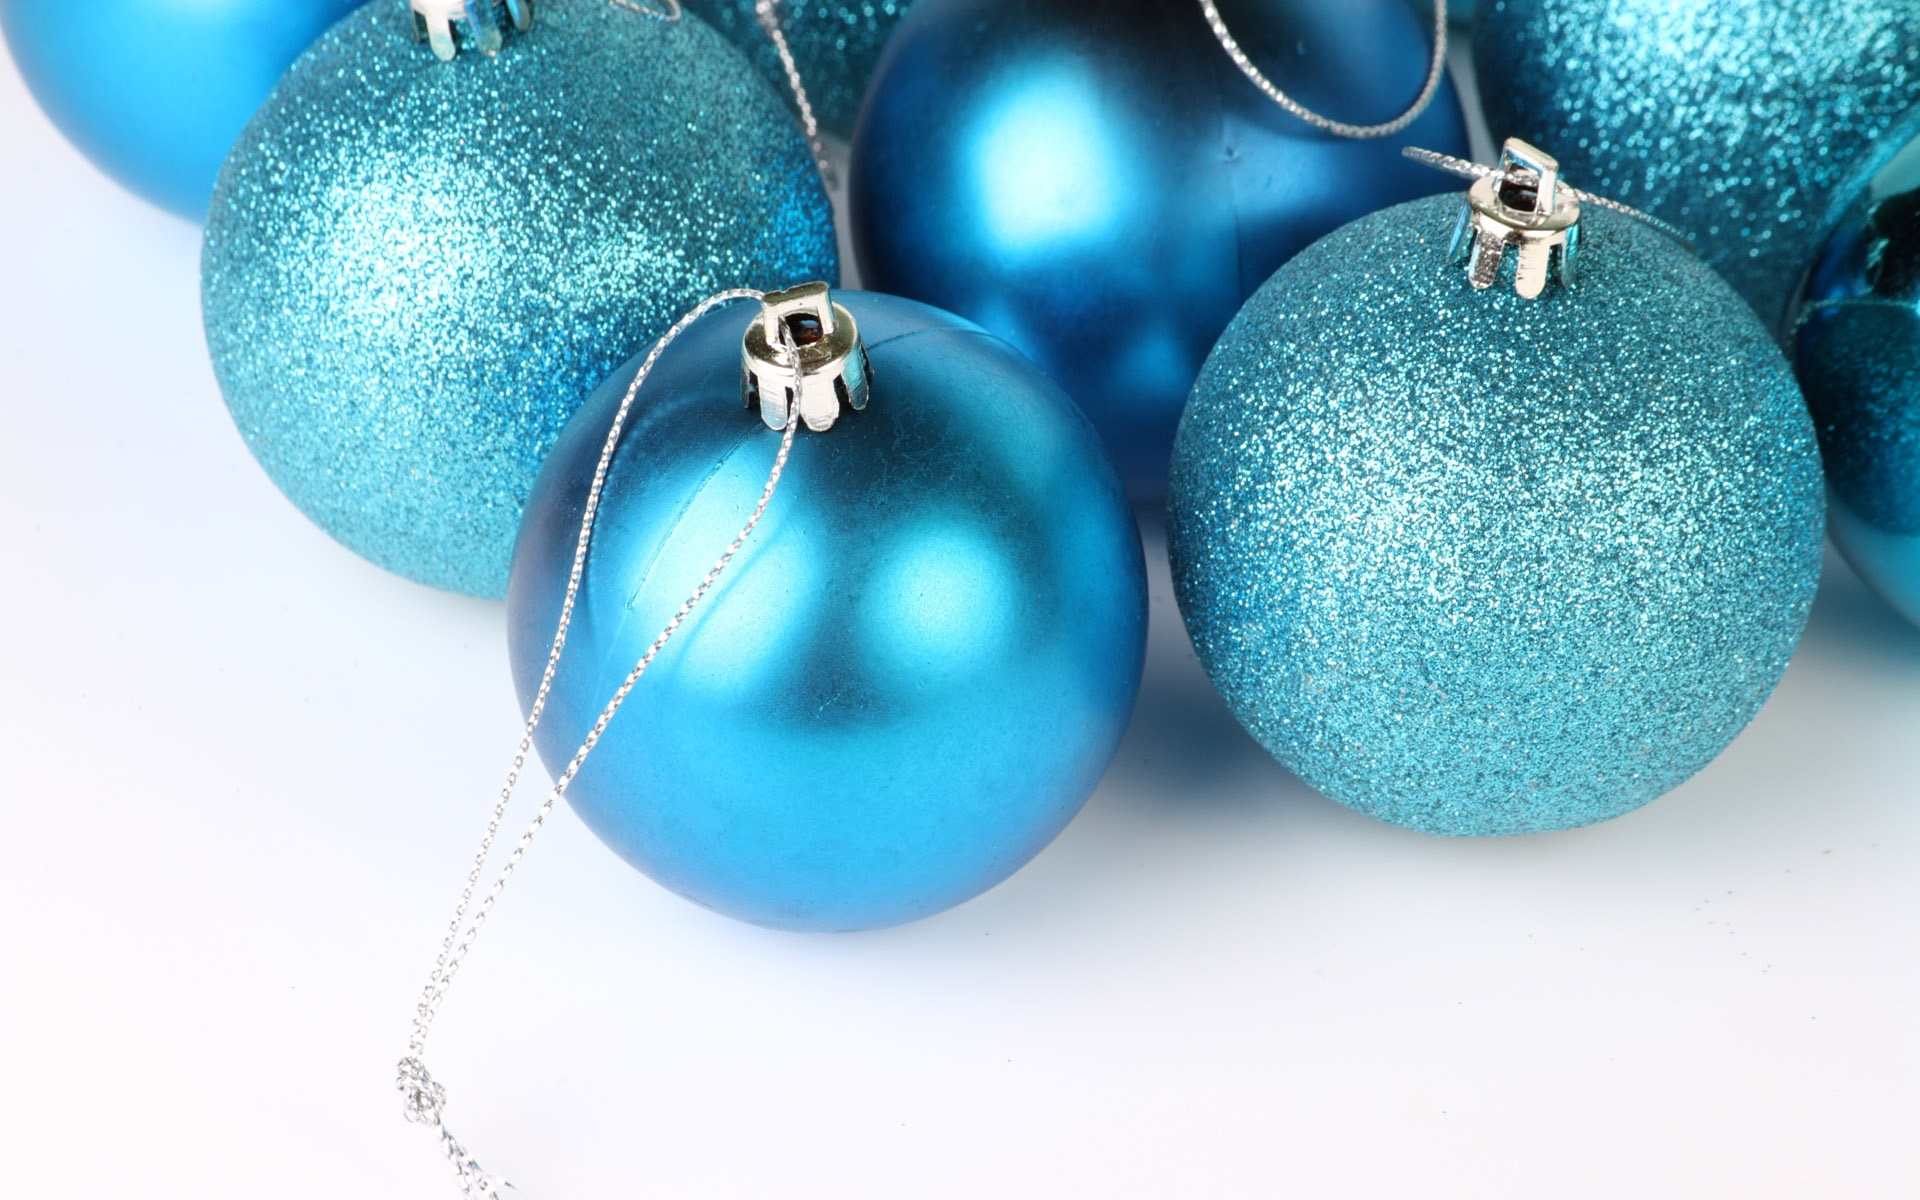 Blue Christmas Ornaments wallpapers | Blue Christmas Ornaments ...